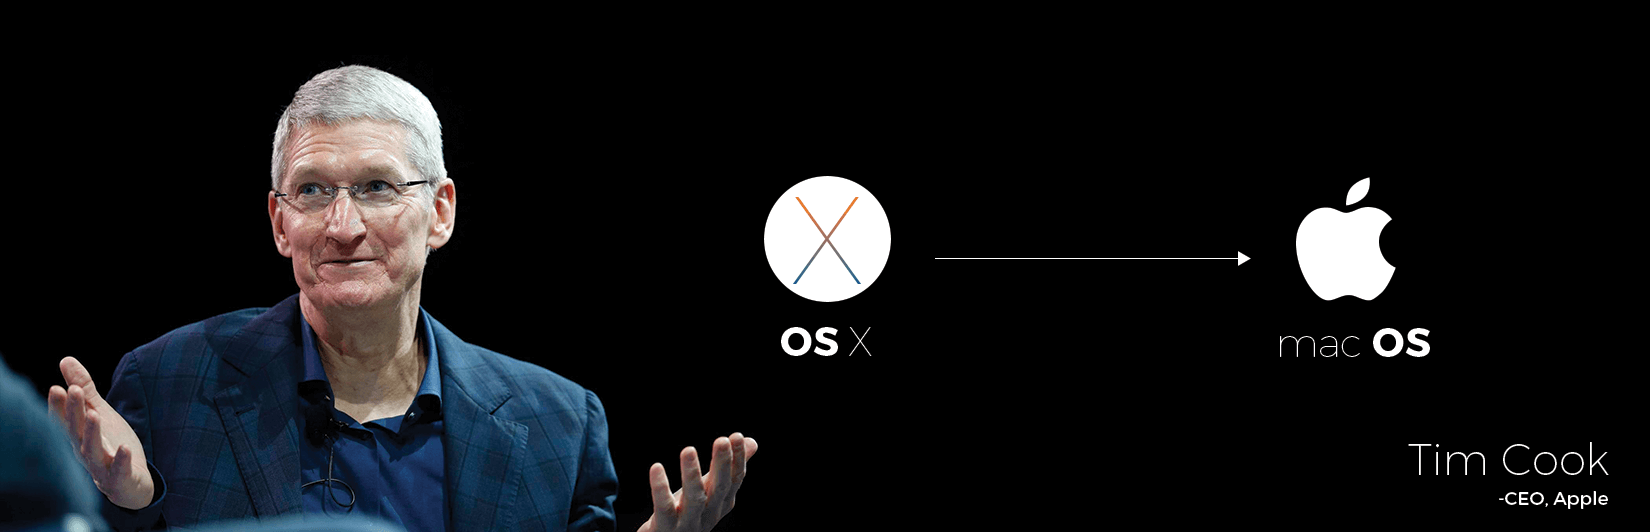 Updates from Apple WWDC 2016 – OS X is now macOS